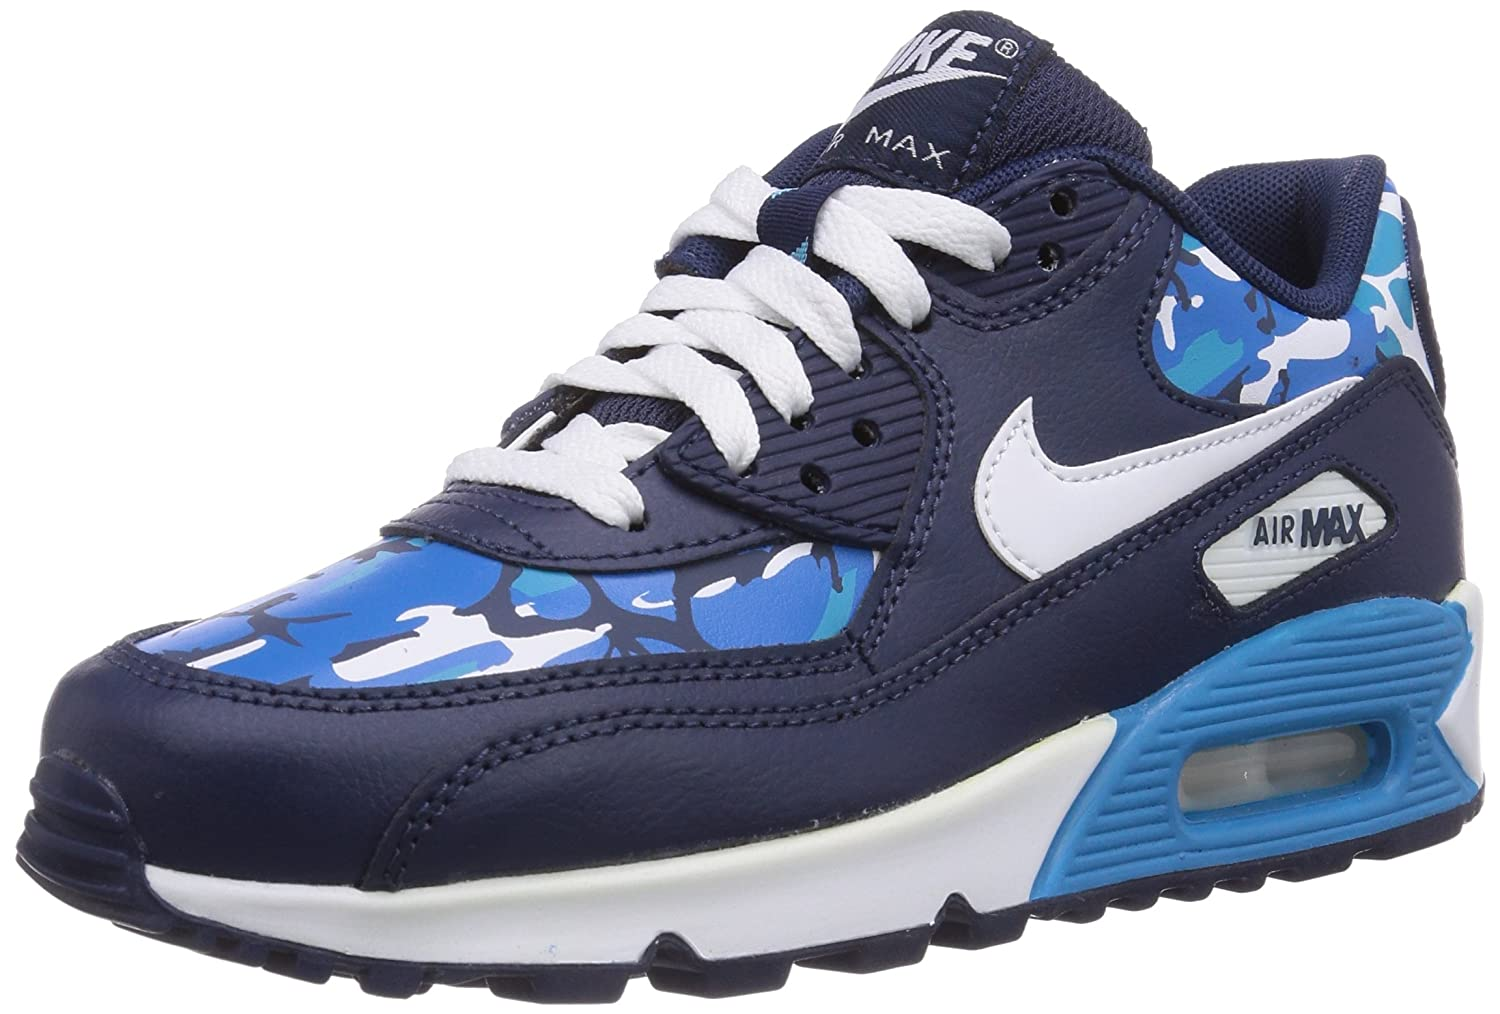 nike air max 90 mens running shoe black and red fashion. Black Bedroom Furniture Sets. Home Design Ideas